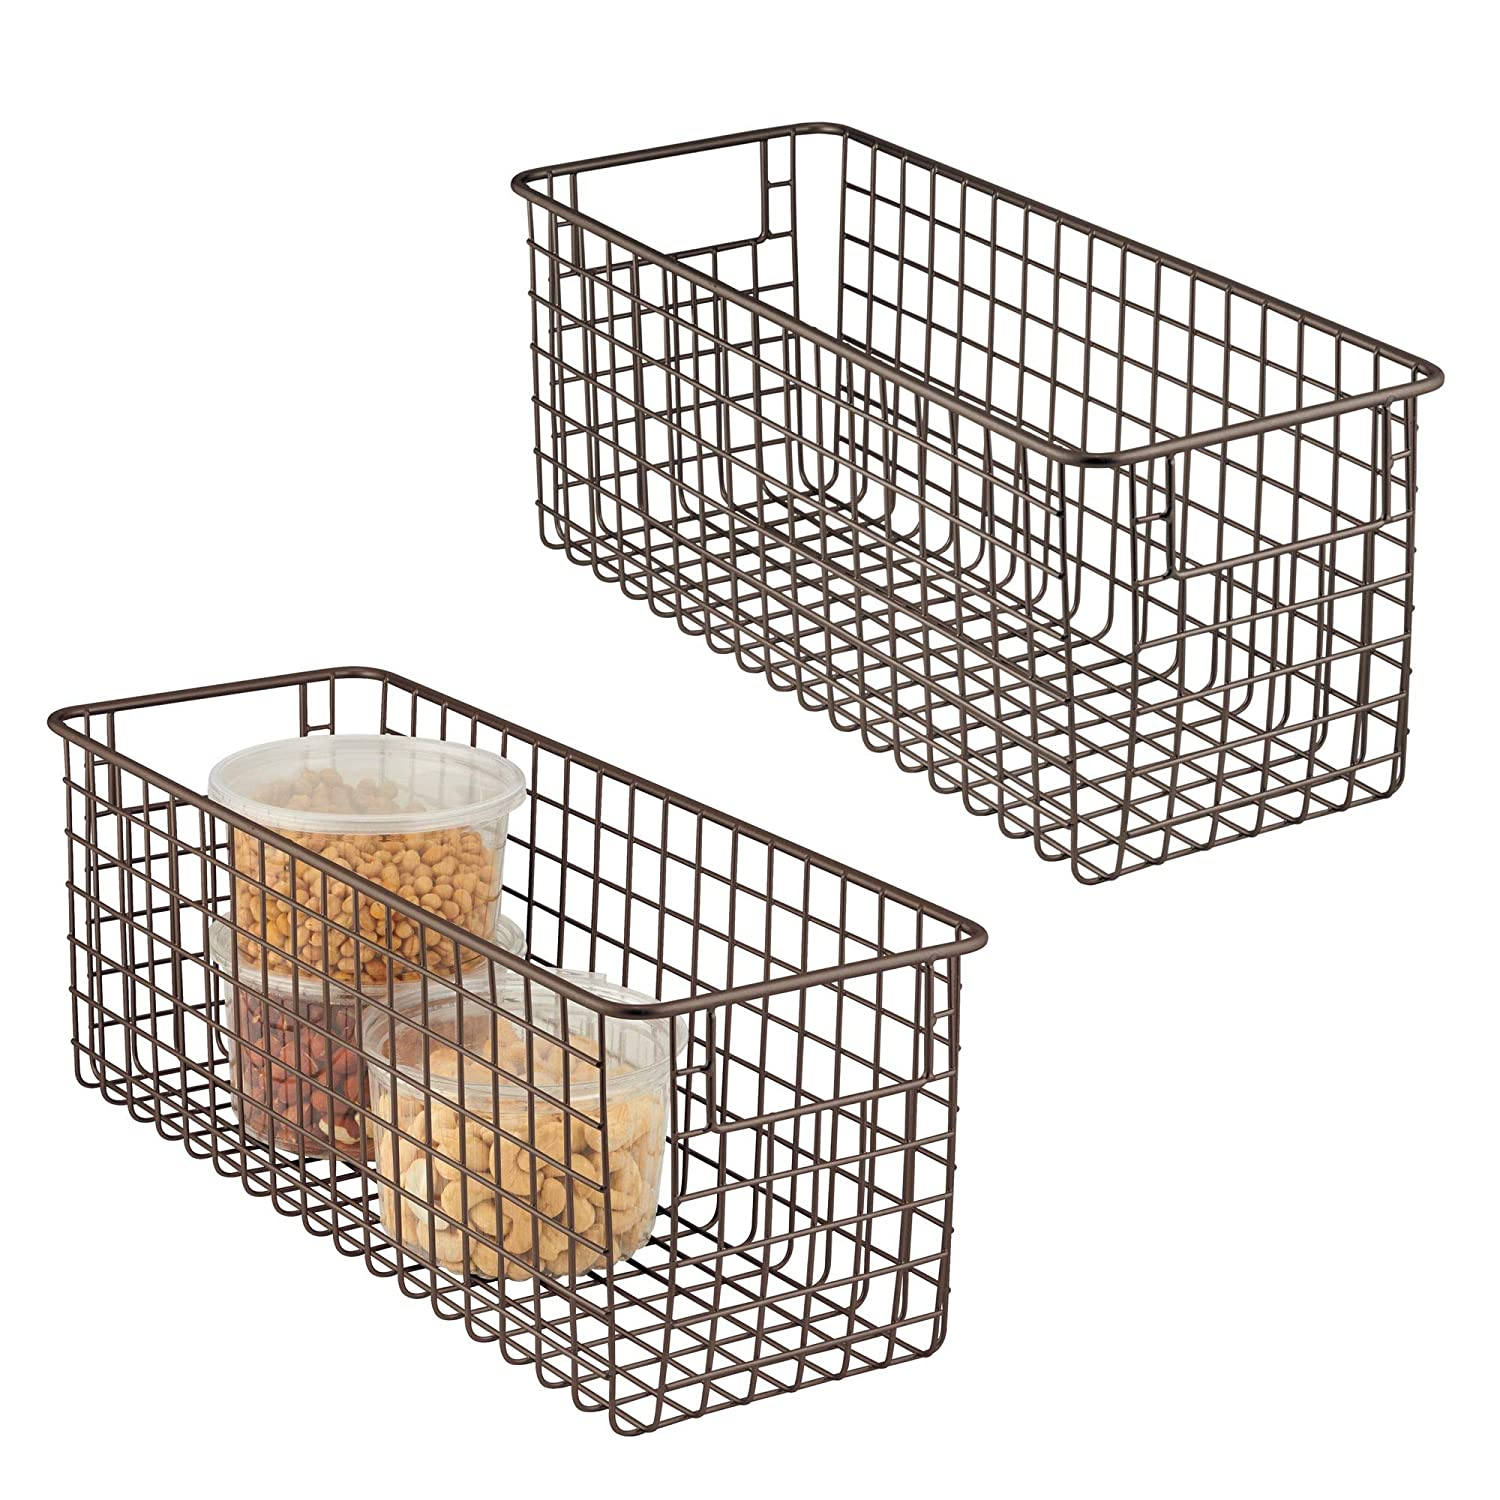 "mDesign Farmhouse Decor Metal Wire Food Storage Organizer Bin Basket with Handles for Kitchen Cabinets, Pantry, Bathroom, Laundry Room, Closets, Garage - 16"" x 6"" x 6"" - 2 Pack - Bronze"